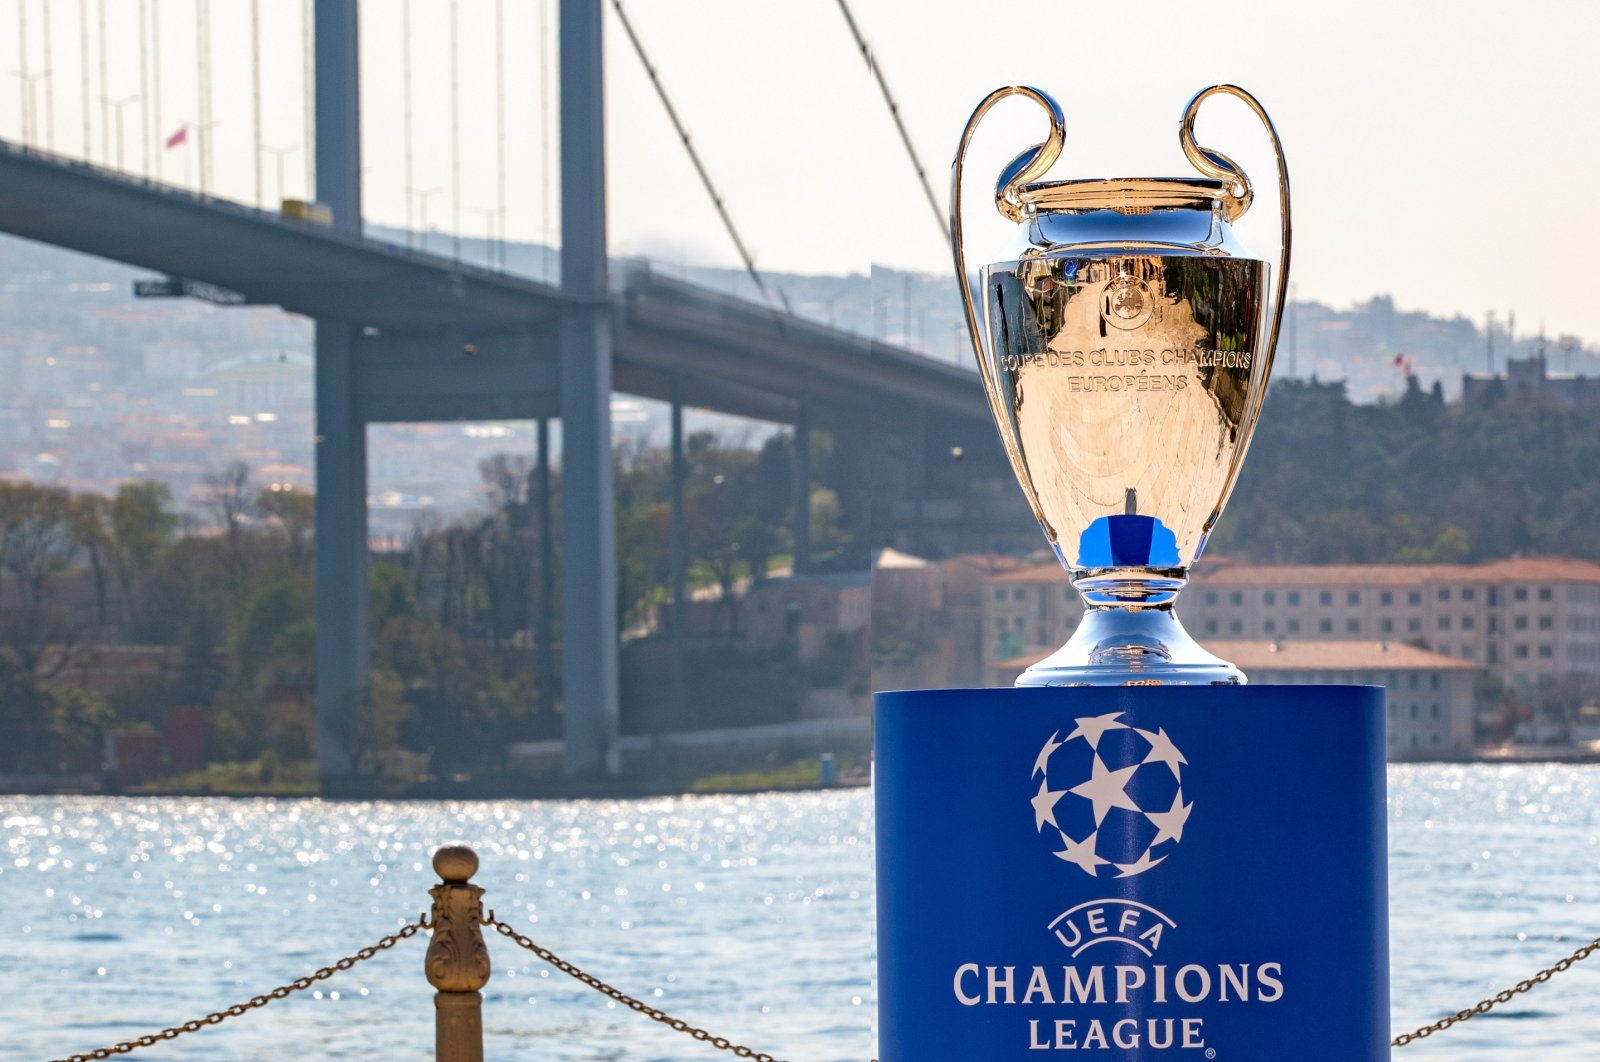 Champions League Final 2023, will be held in Istanbul